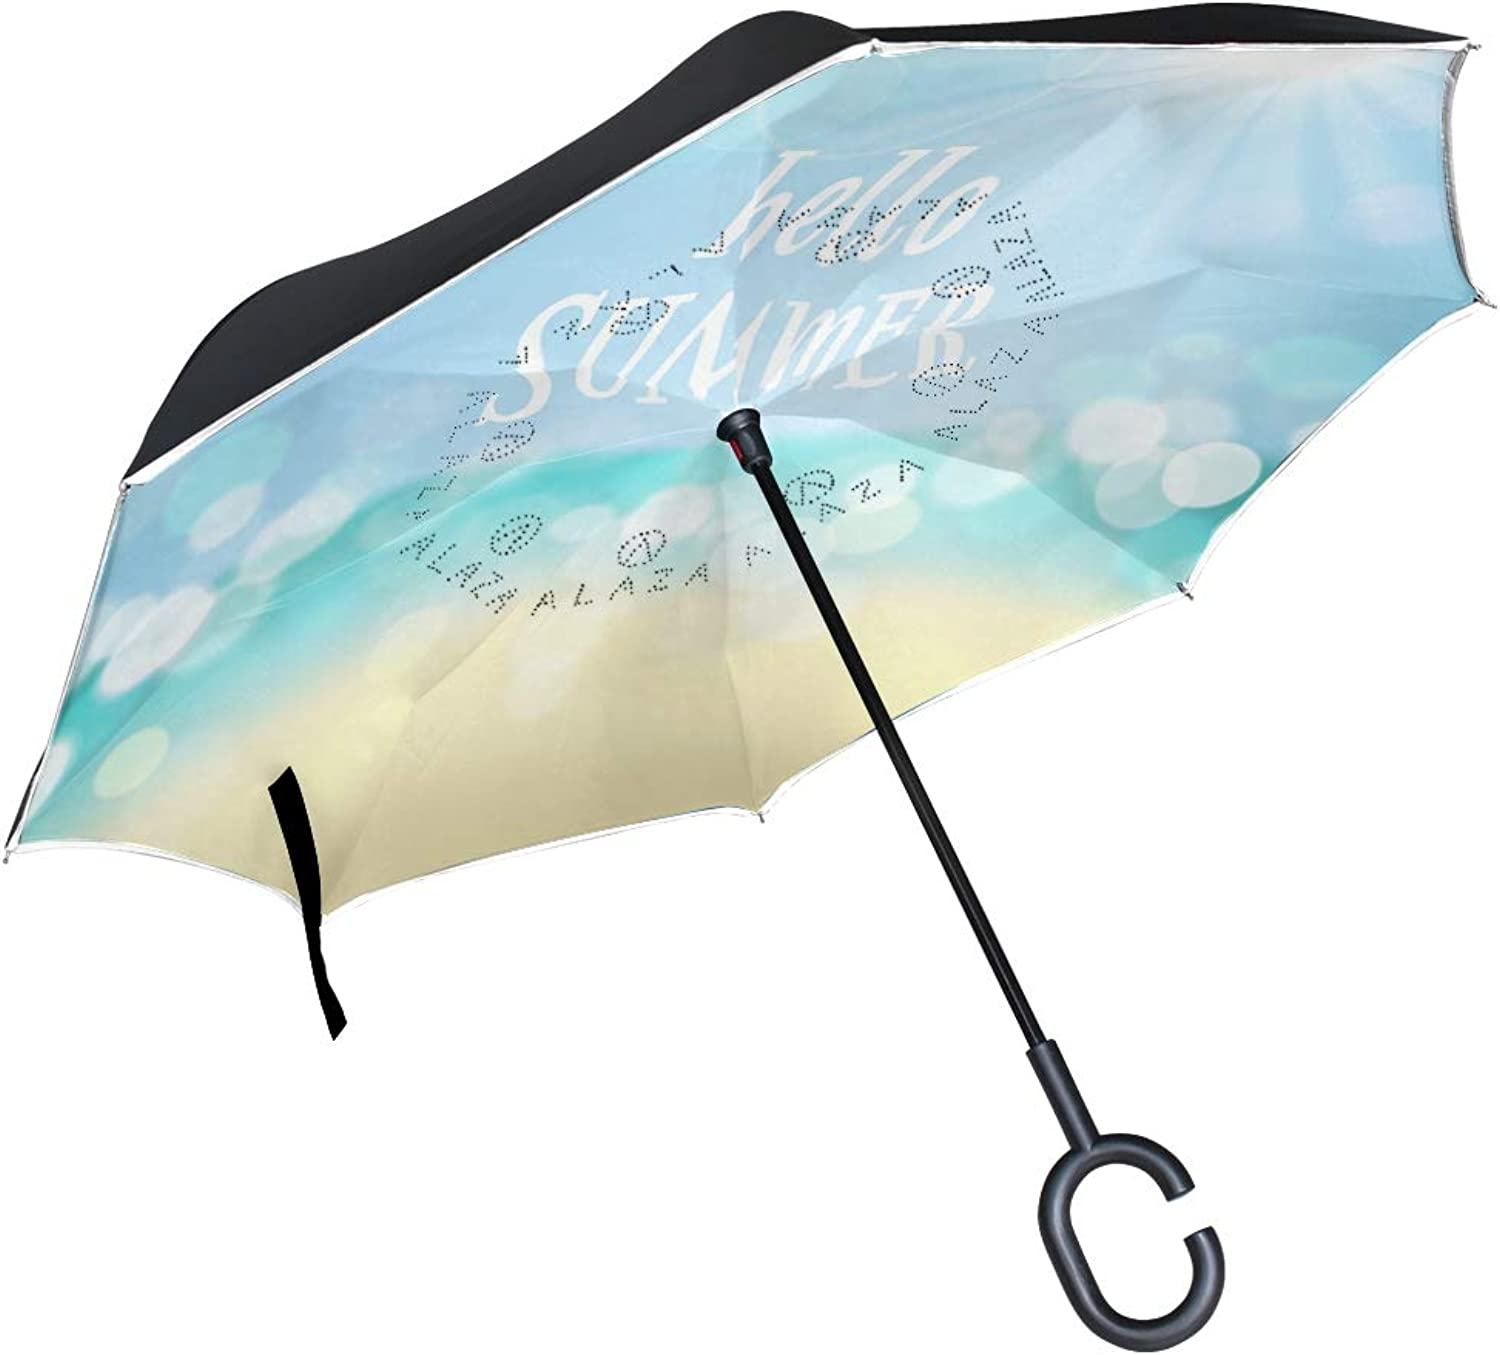 Ingreened Umbrella Double Layer Reverse Umbrella Waterproof Windproof UV Predection Straight Umbrella with CShaped Handle Ocean Sunset Digital Printing for Car Rain Outdoor Use